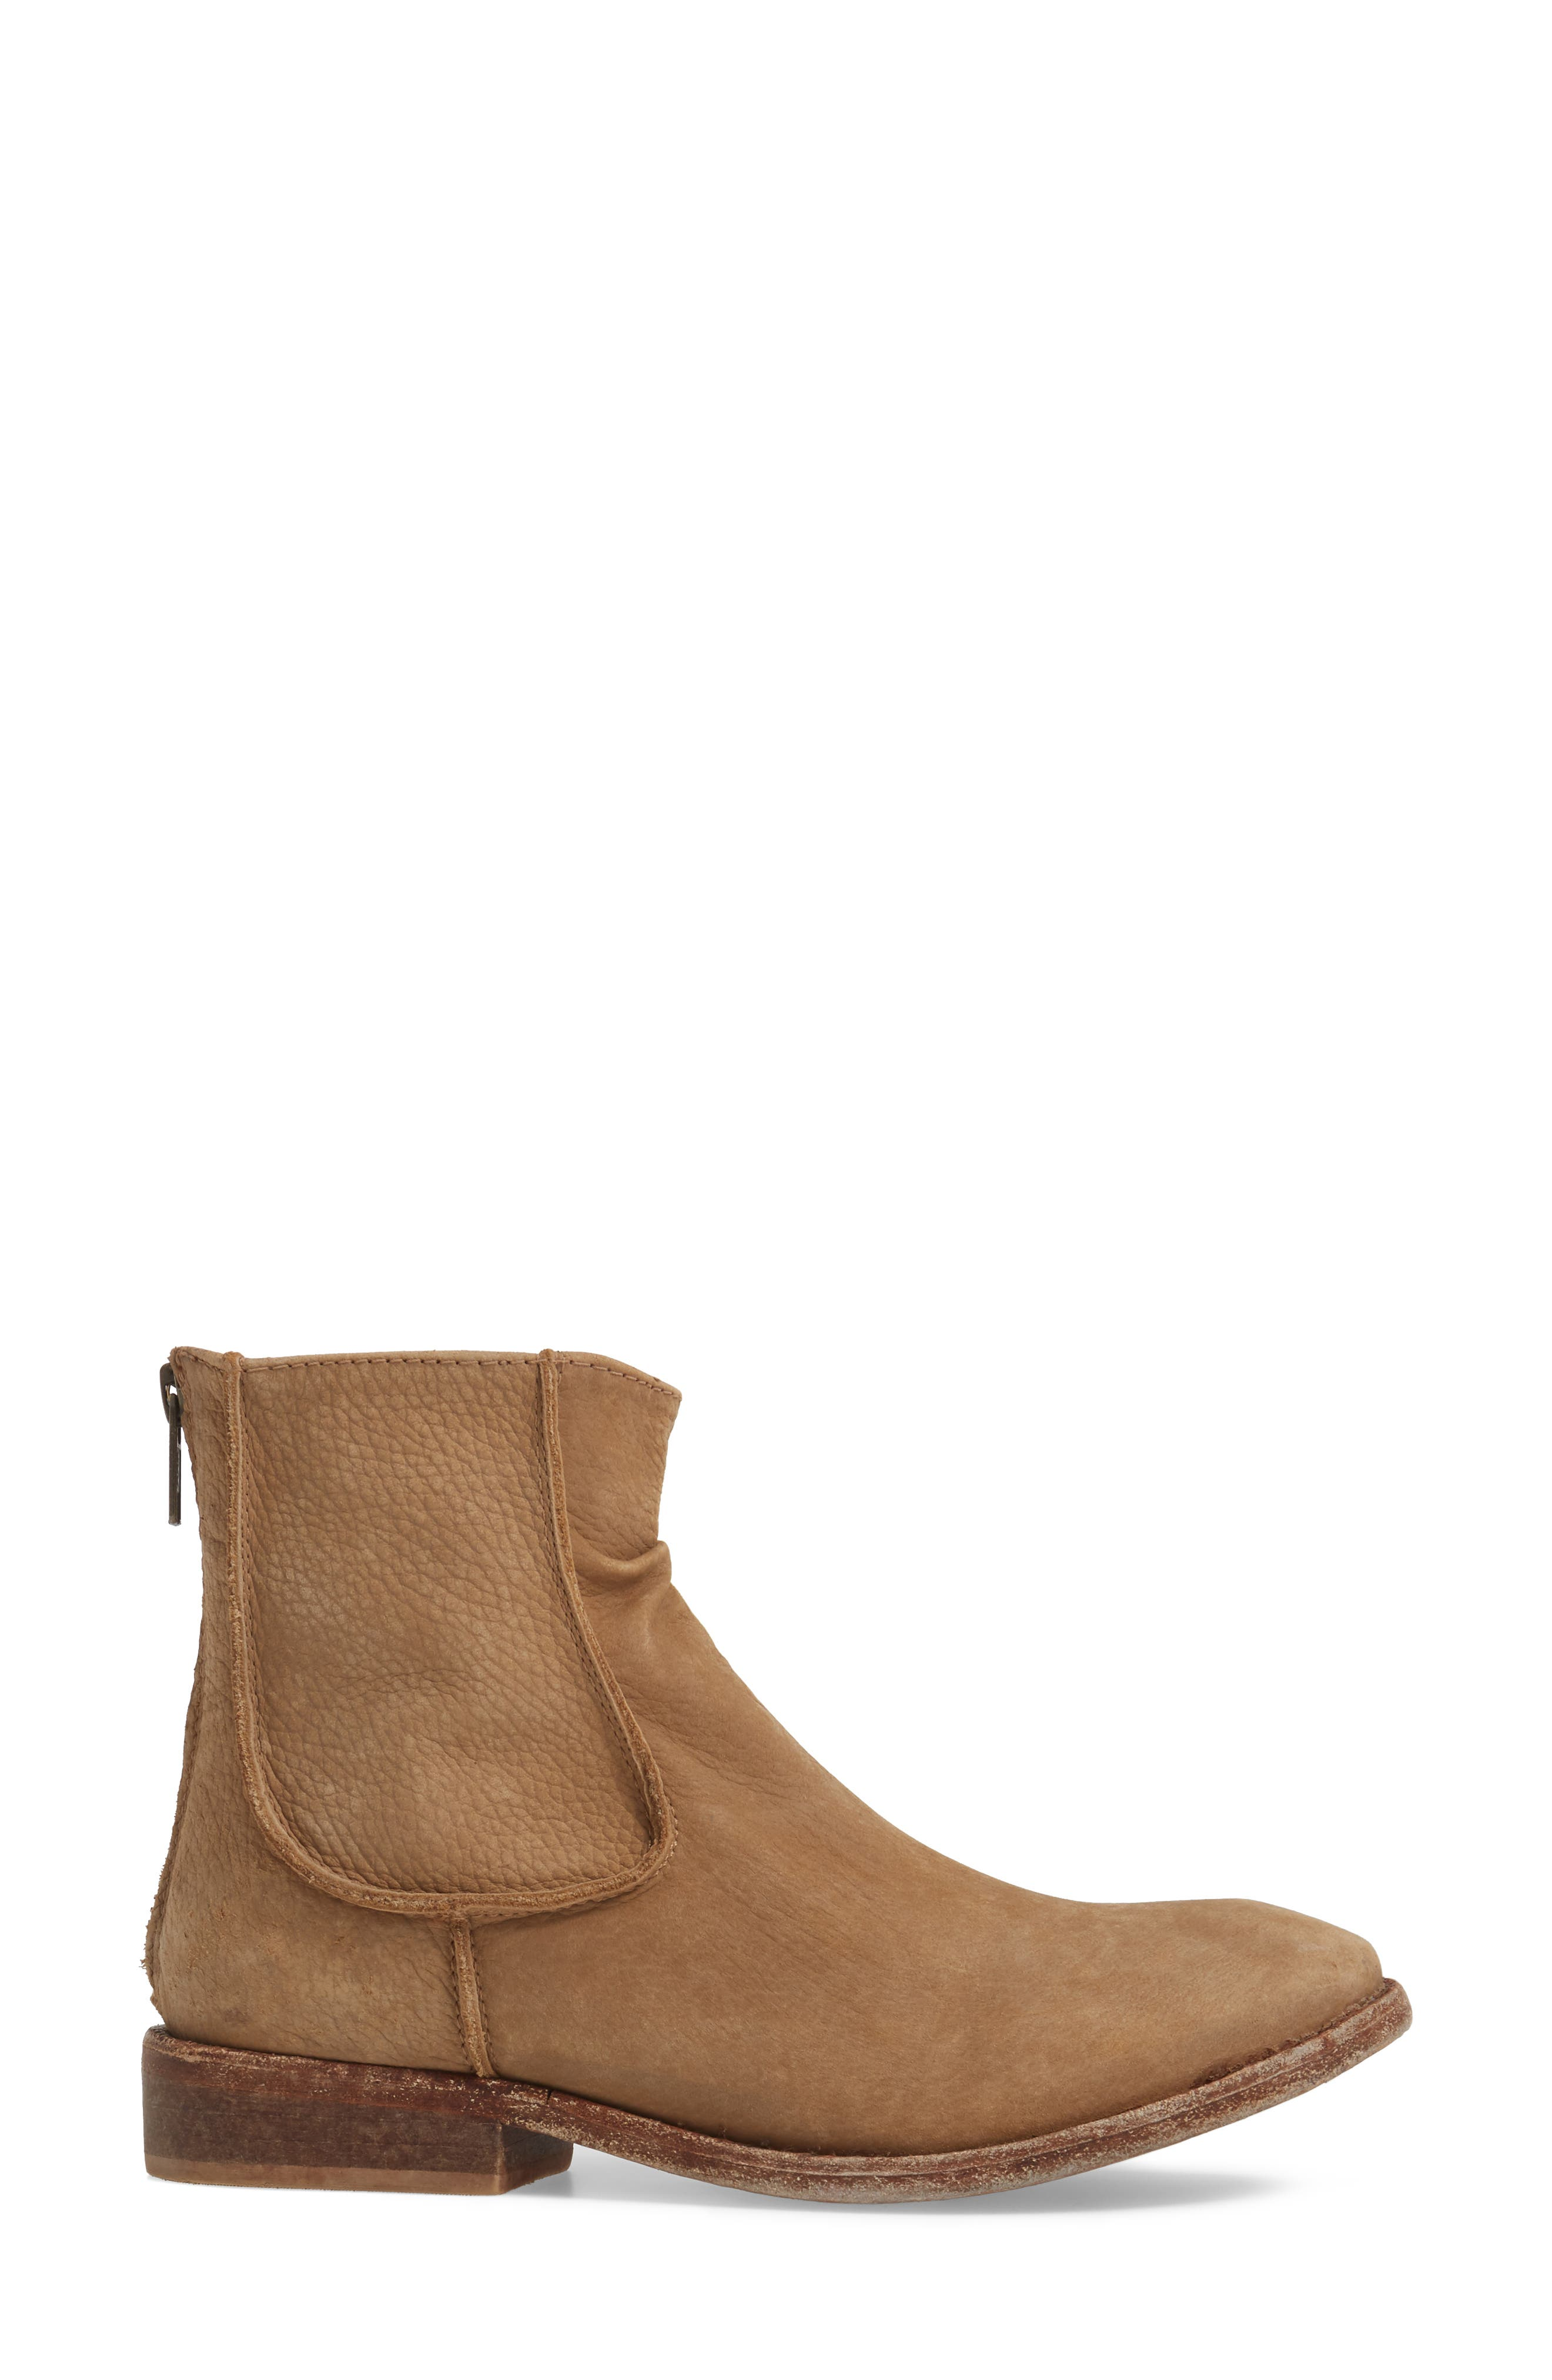 'Gerald' Distressed Bootie,                             Alternate thumbnail 9, color,